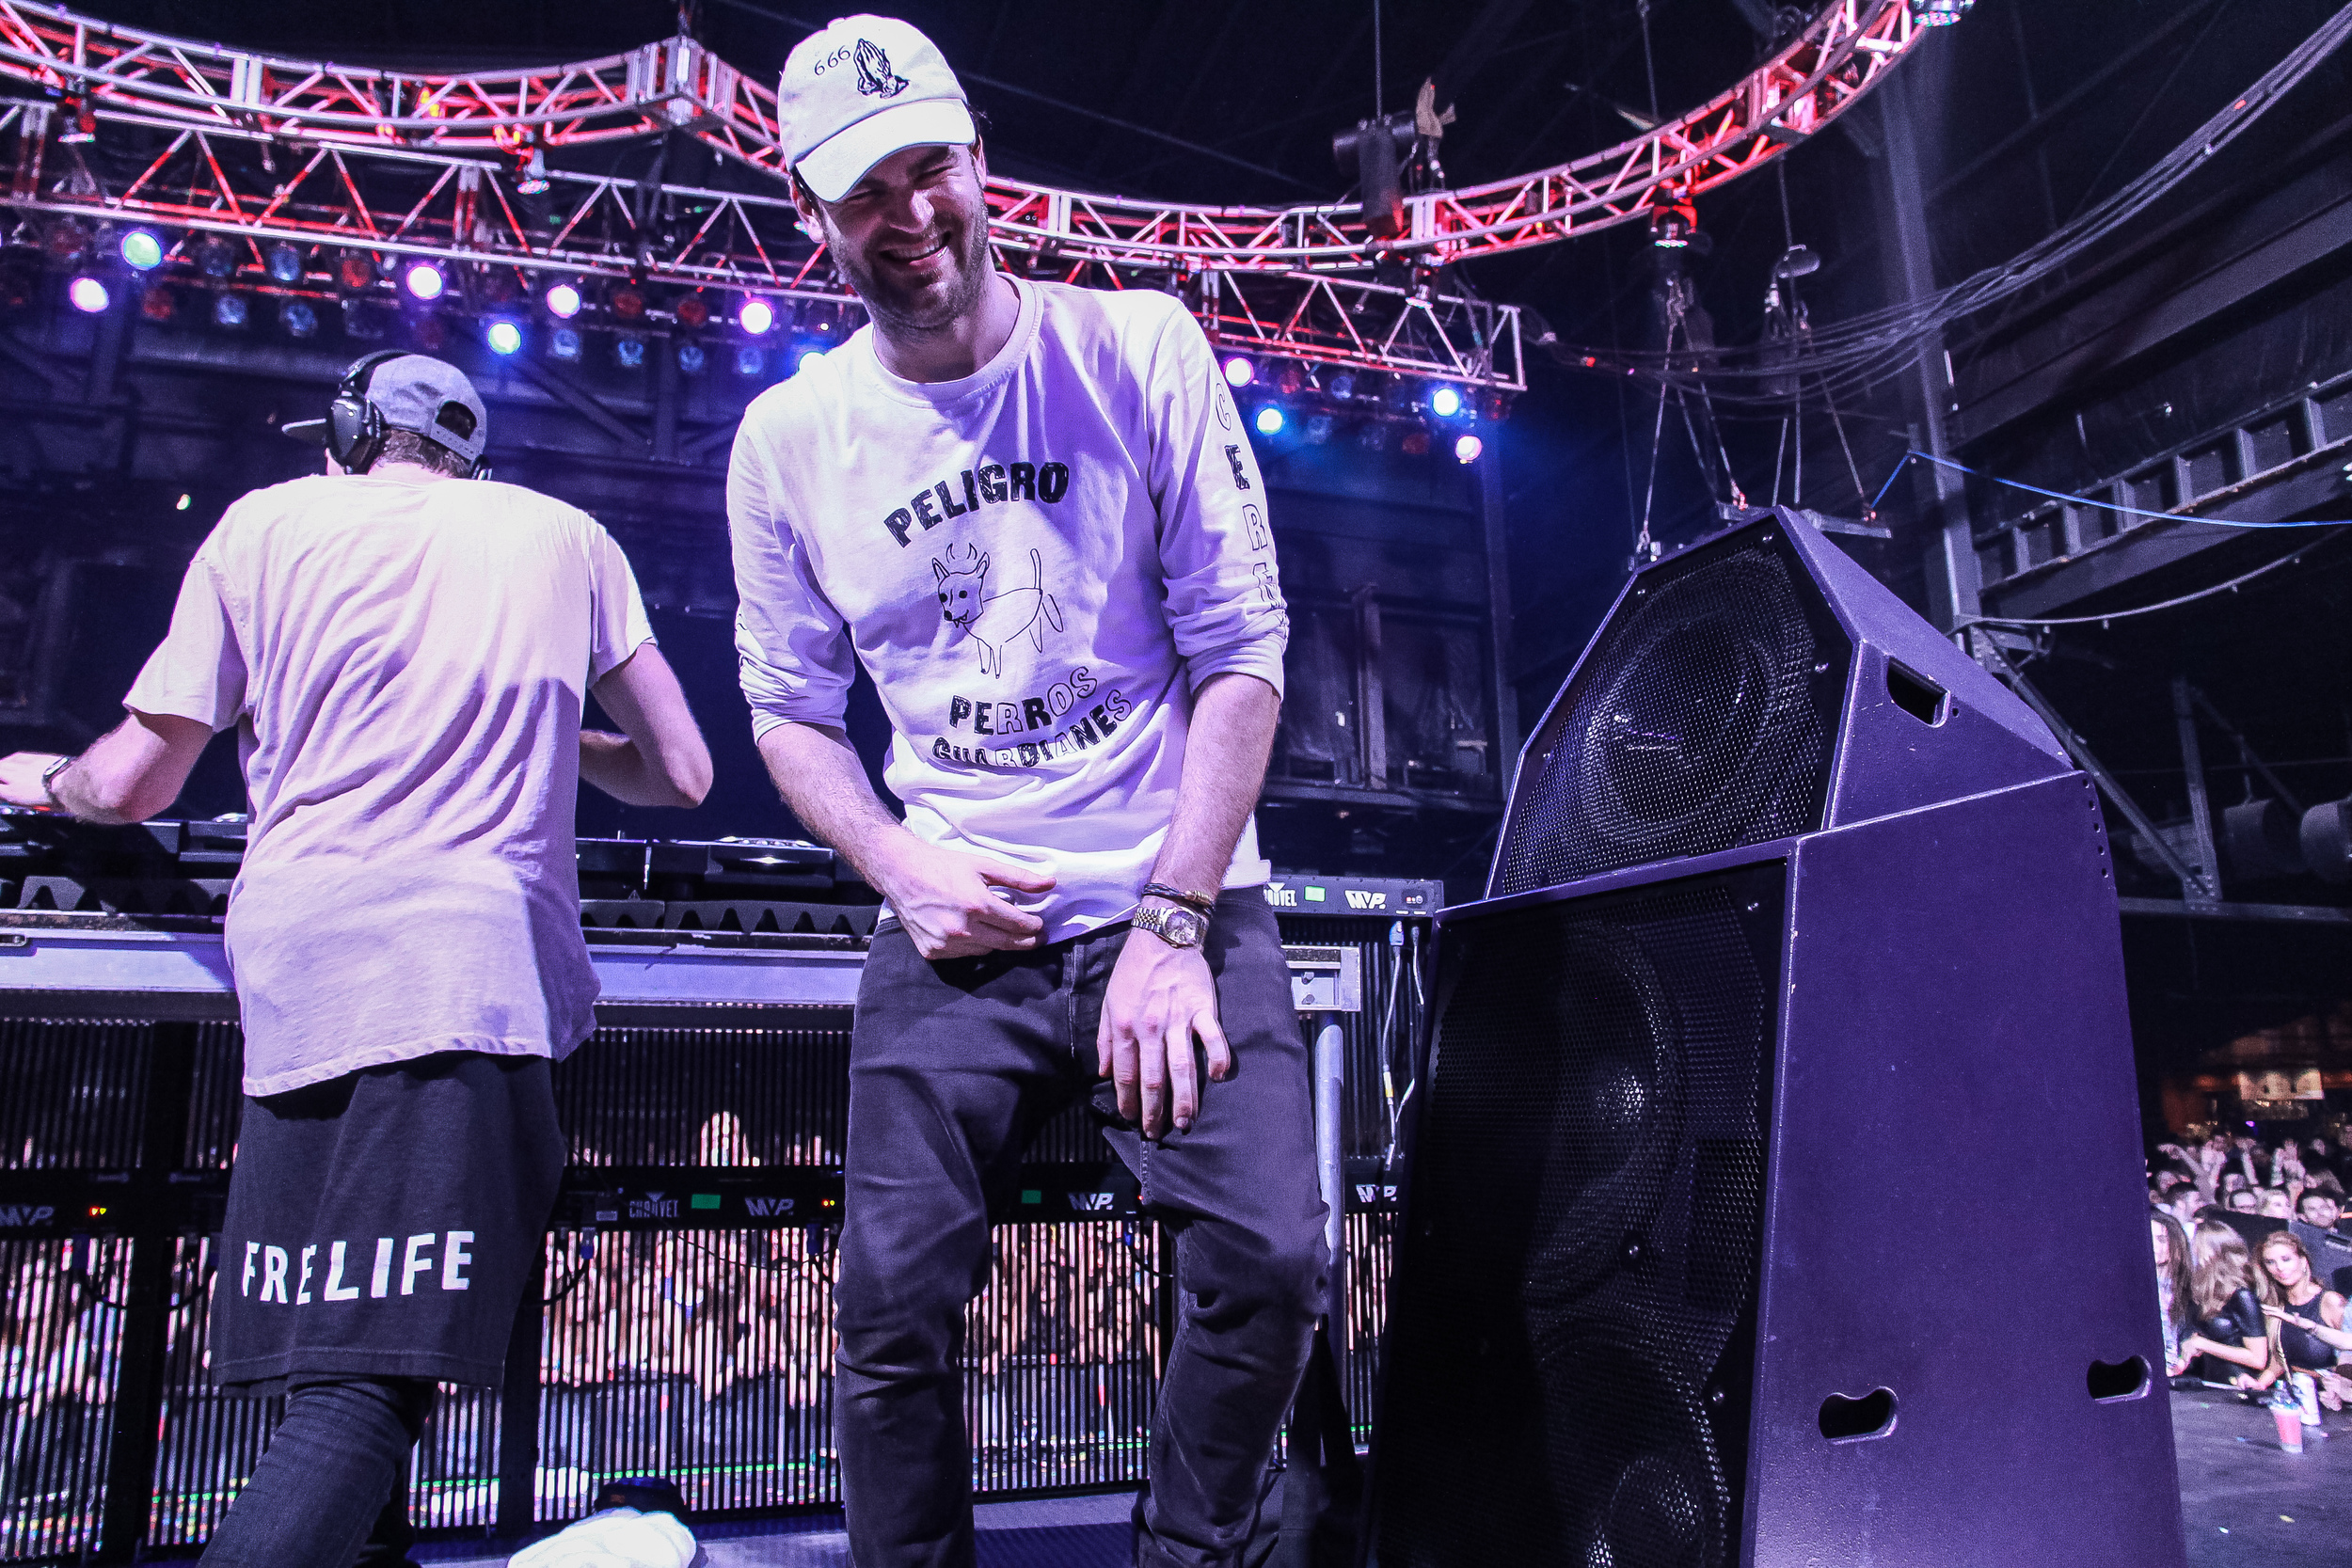 The Chainsmokers at South Side Ballroom in Dallas, TX